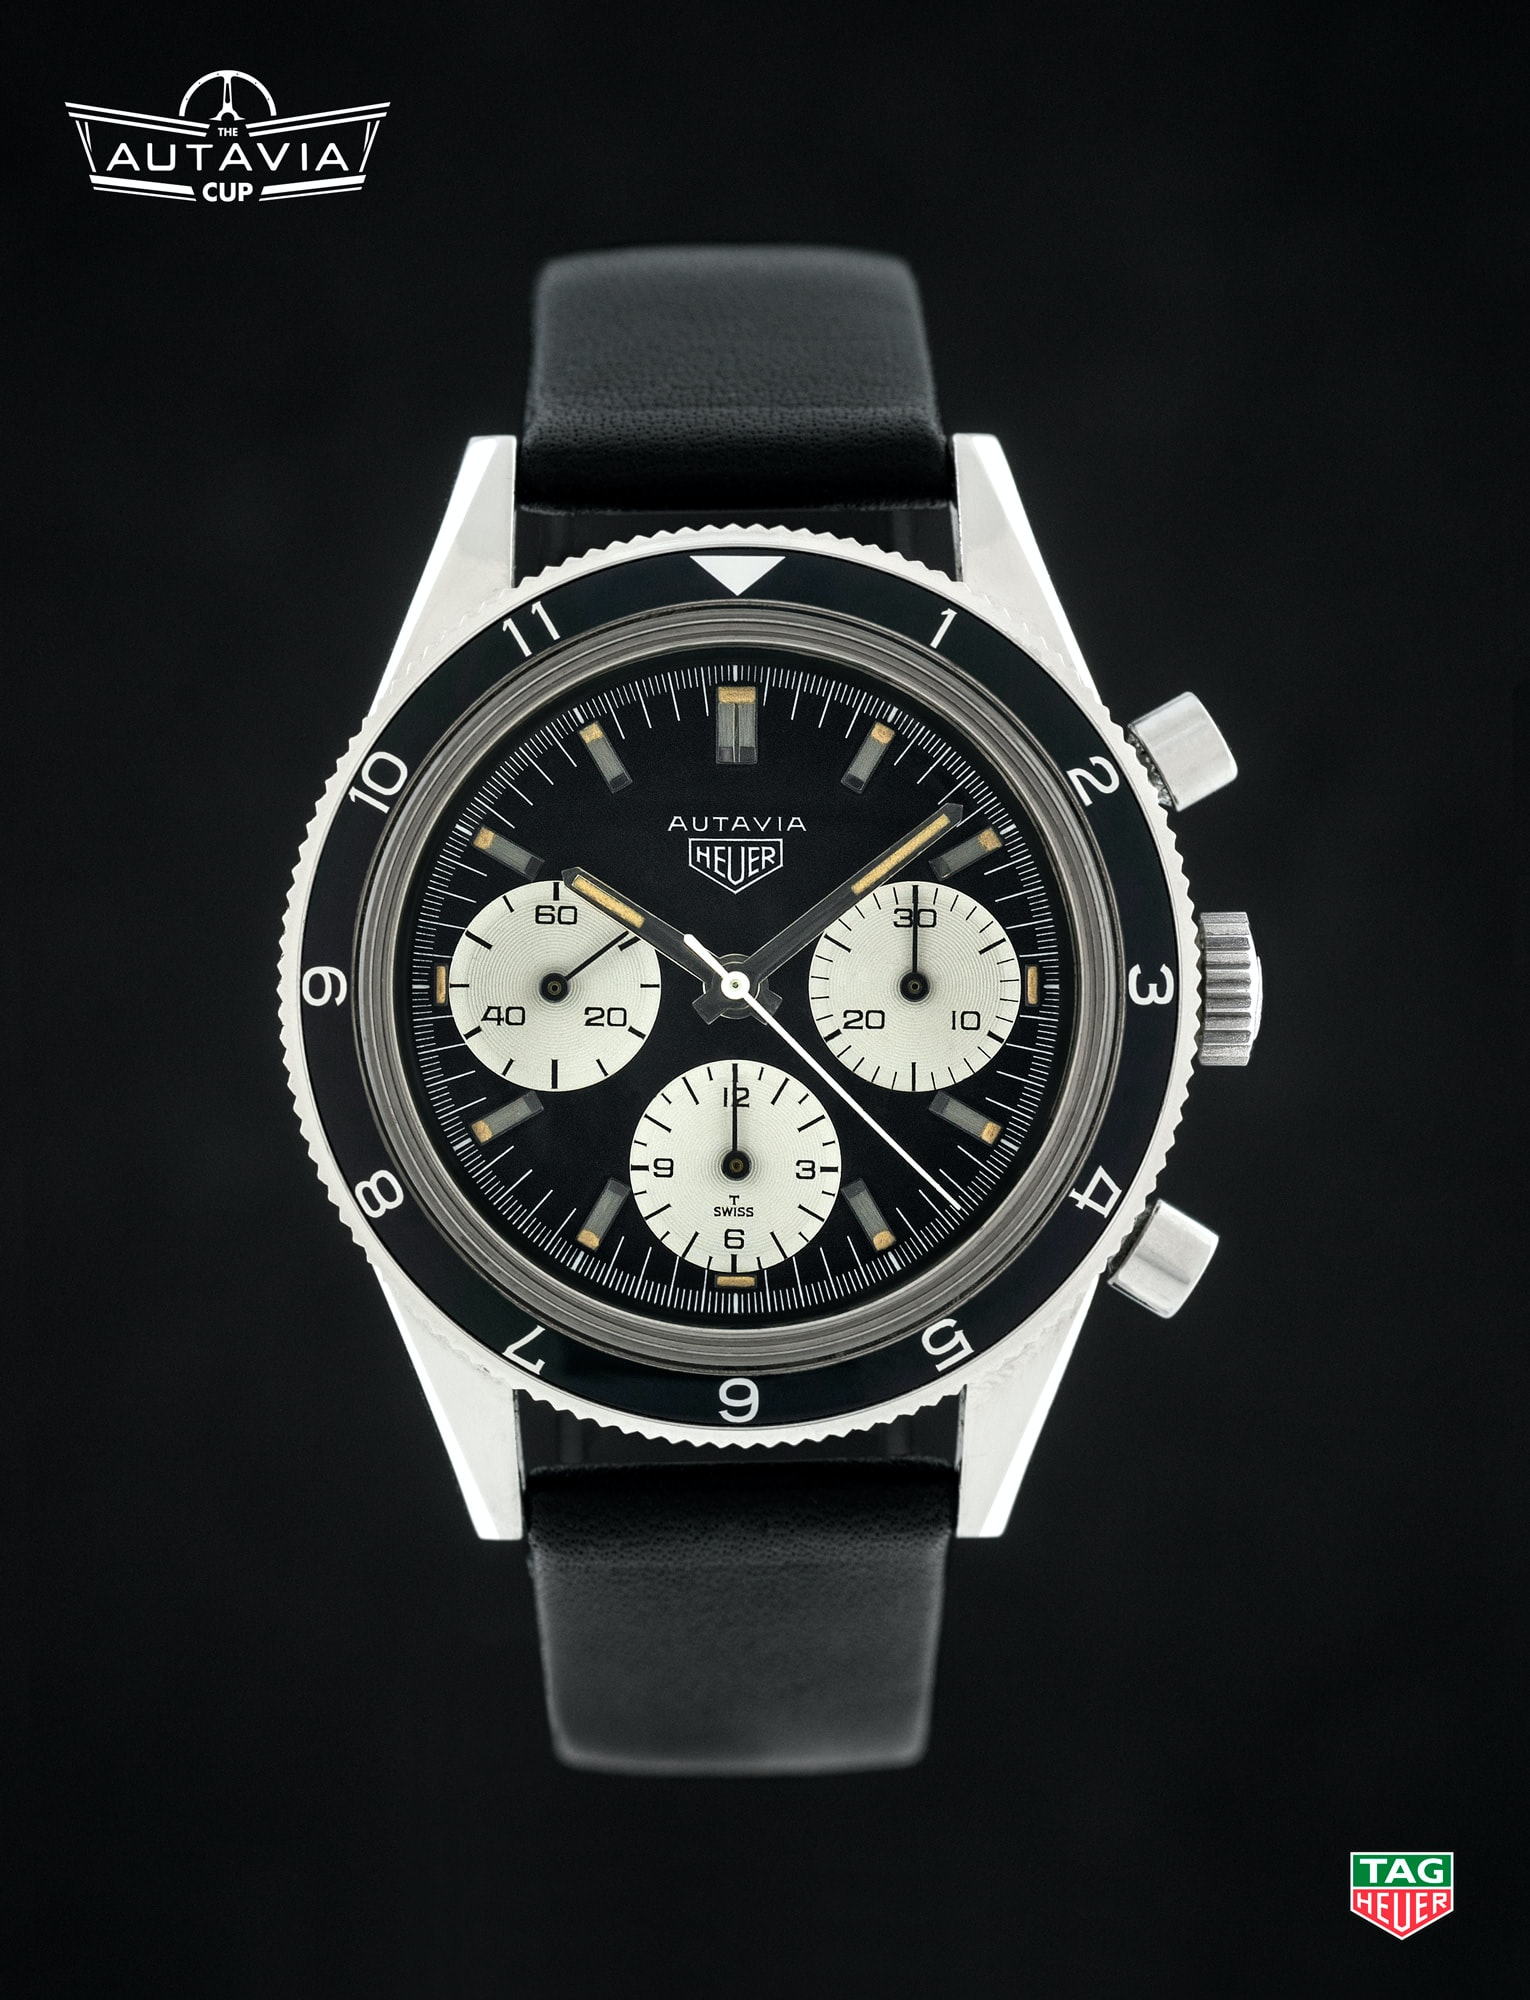 Heuer Autavia Ref. 2446 Mk3 TAG Heuer Will Relaunch The Autavia In 2017 – And Fans Get To Choose The Model TAG Heuer Will Relaunch The Autavia In 2017 – And Fans Get To Choose The Model 01 2446 Mk3